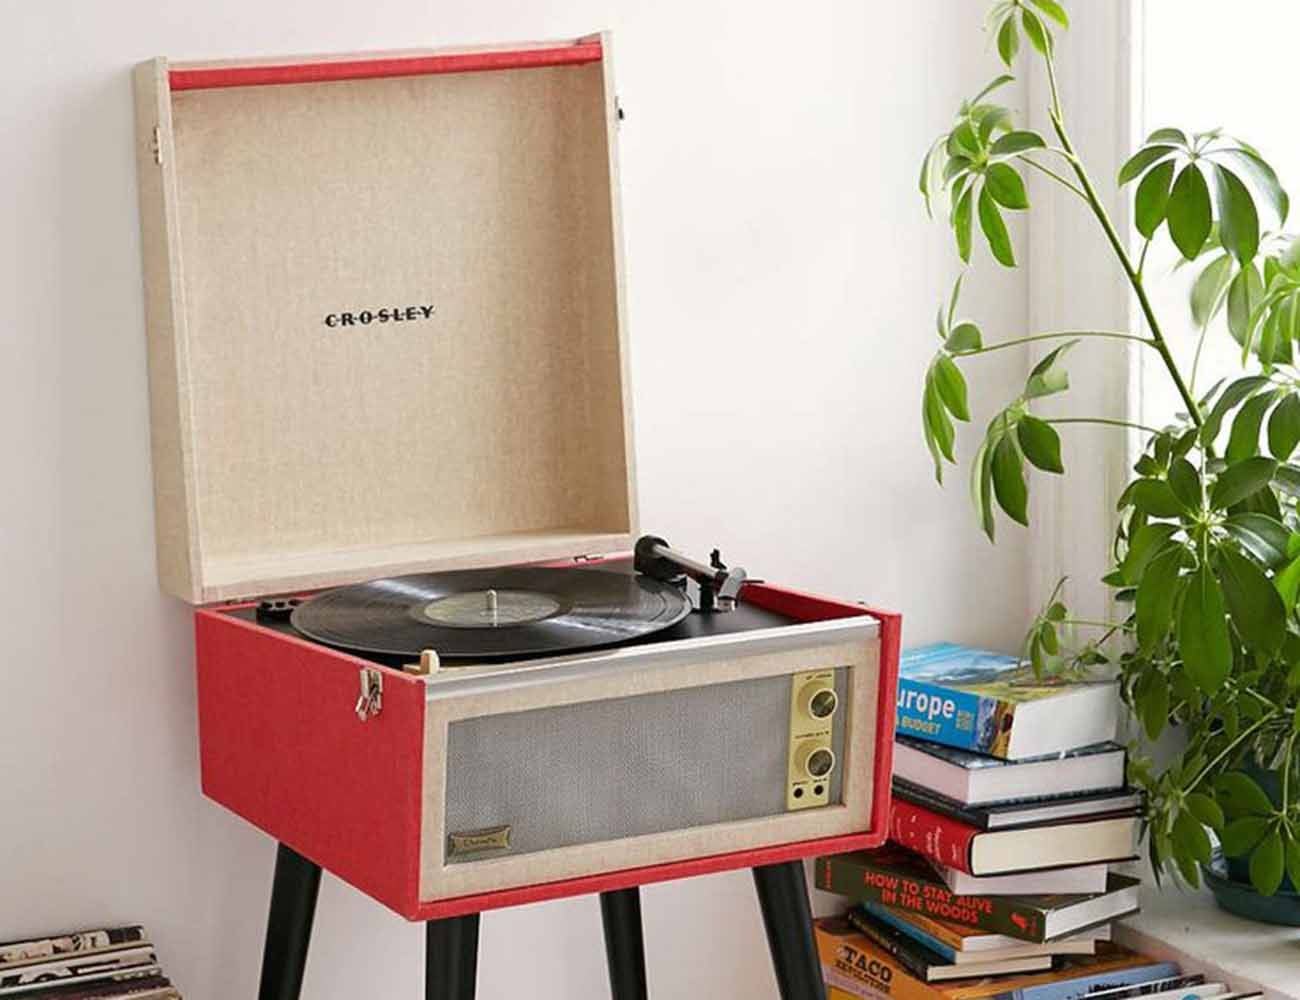 Crosley+Retro+Dansette+Junior+Turntable